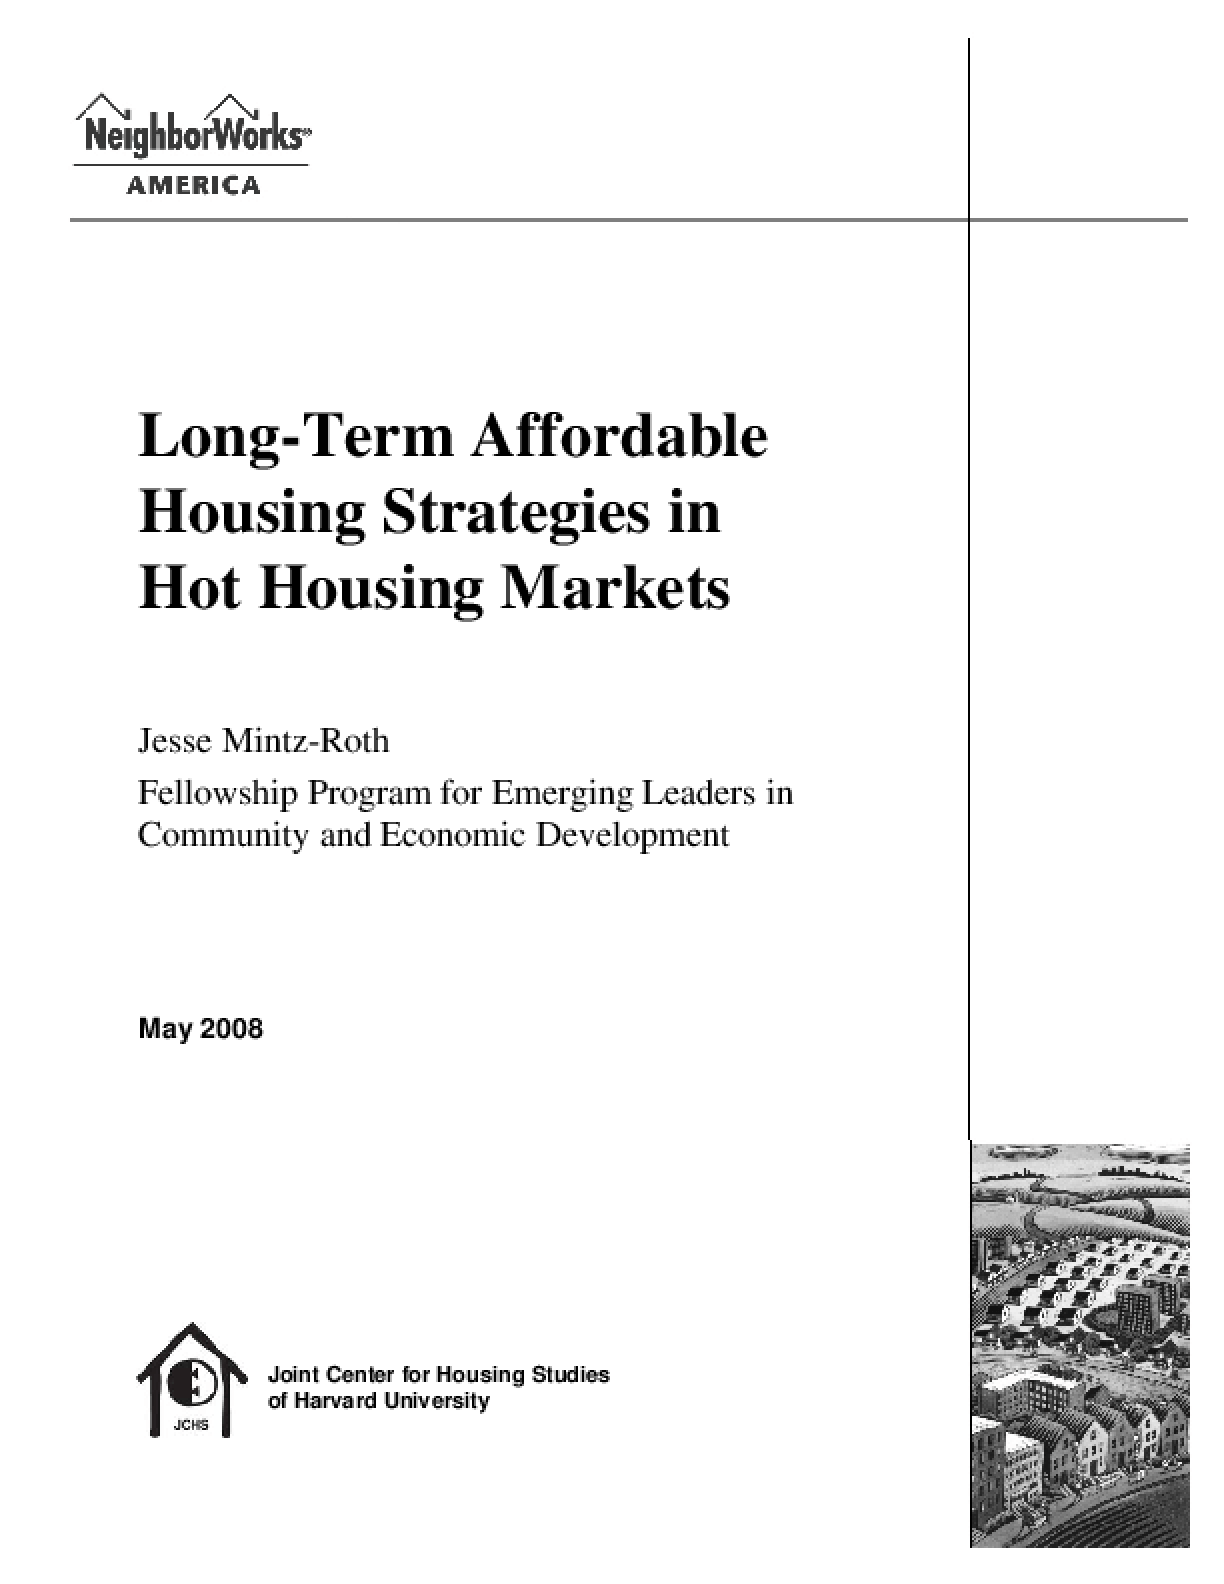 Long-Term Affordable Housing Strategies in Hot Housing Markets